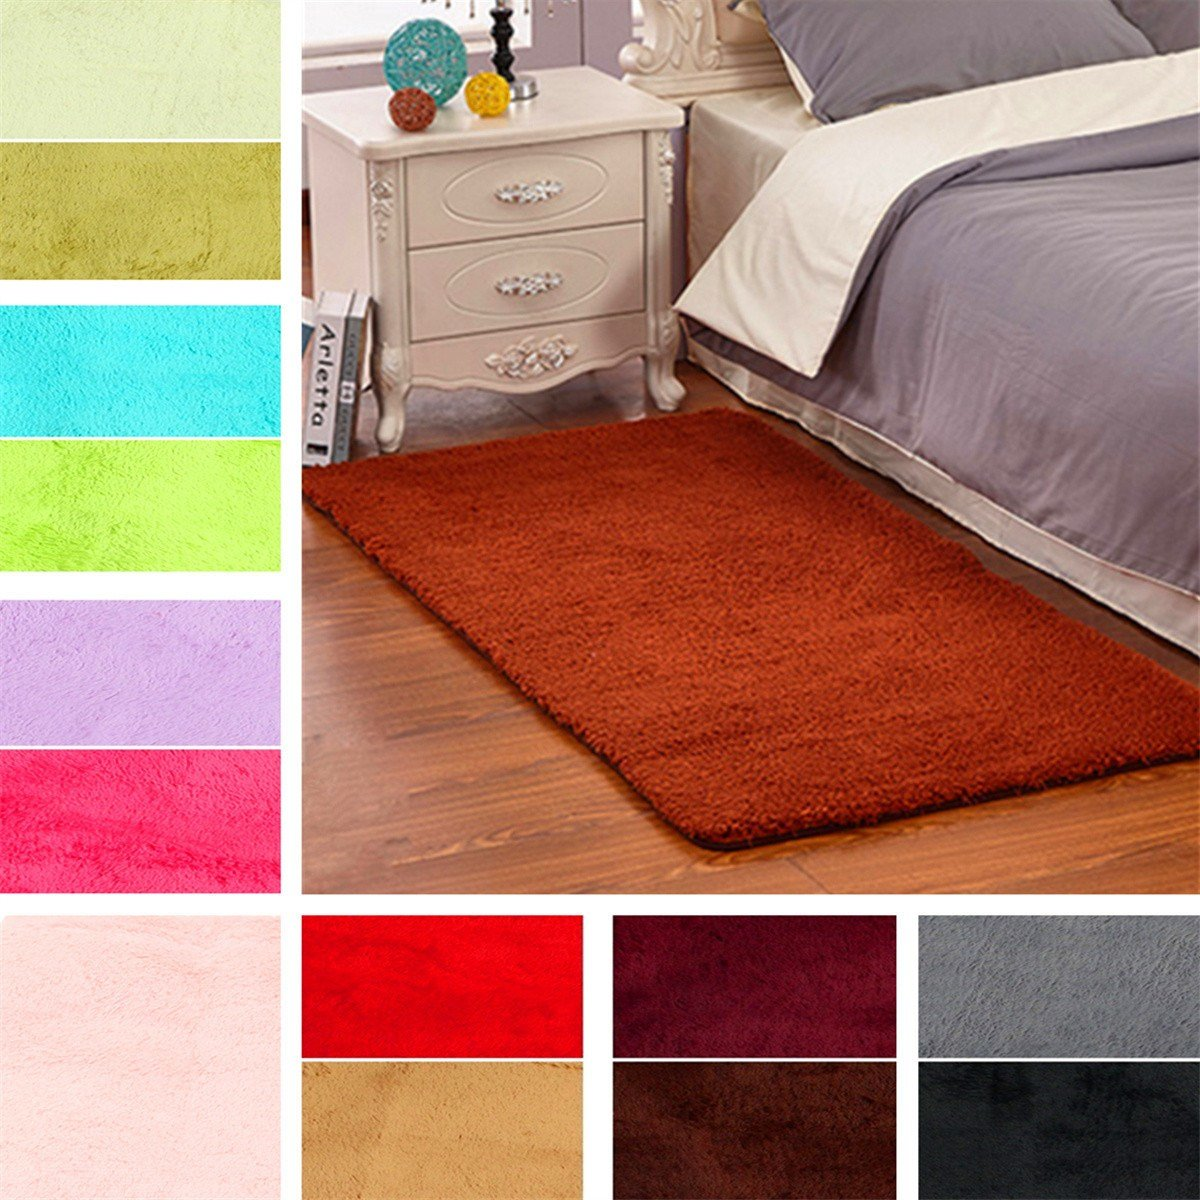 Best 60X120Cm Anti Skid Shaggy Fluffy Area Rug Bedroom Carpet With Pictures